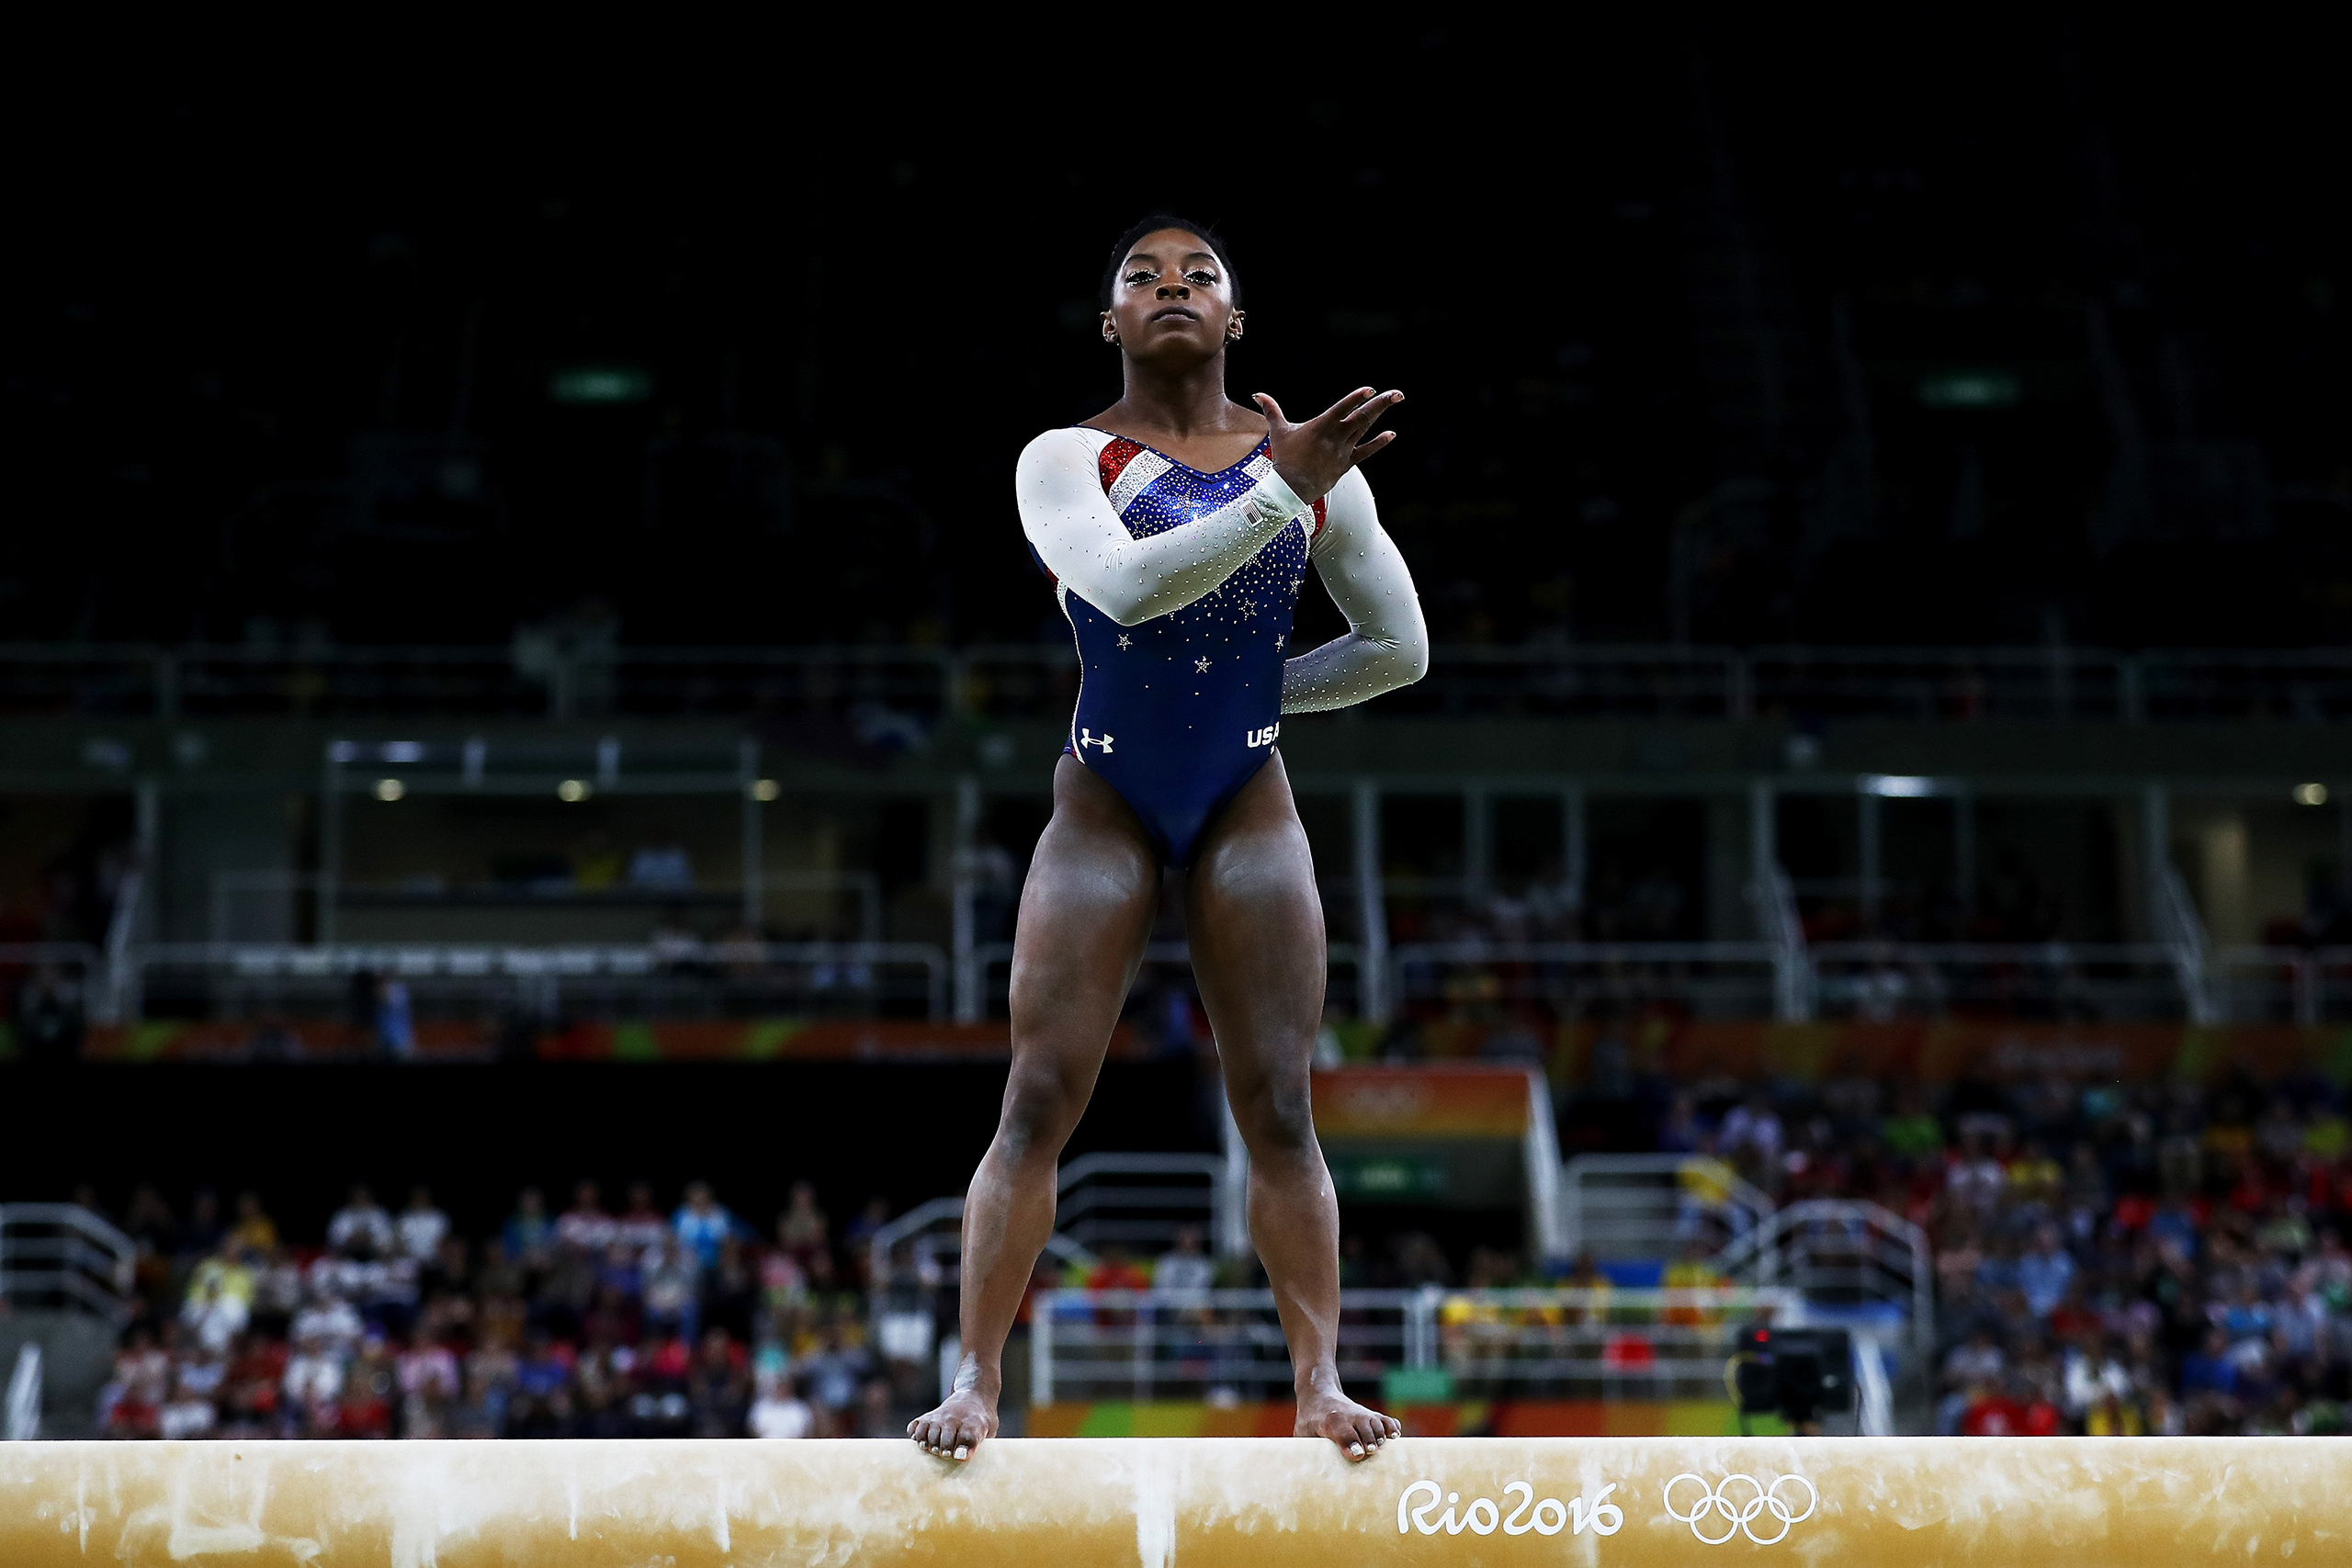 Simone Biles of the United States competes on the balance beam during the Women's Individual All Around Final on Day 6 of the 2016 Rio Olympics at Rio Olympic Arena on Aug. 11, 2016.